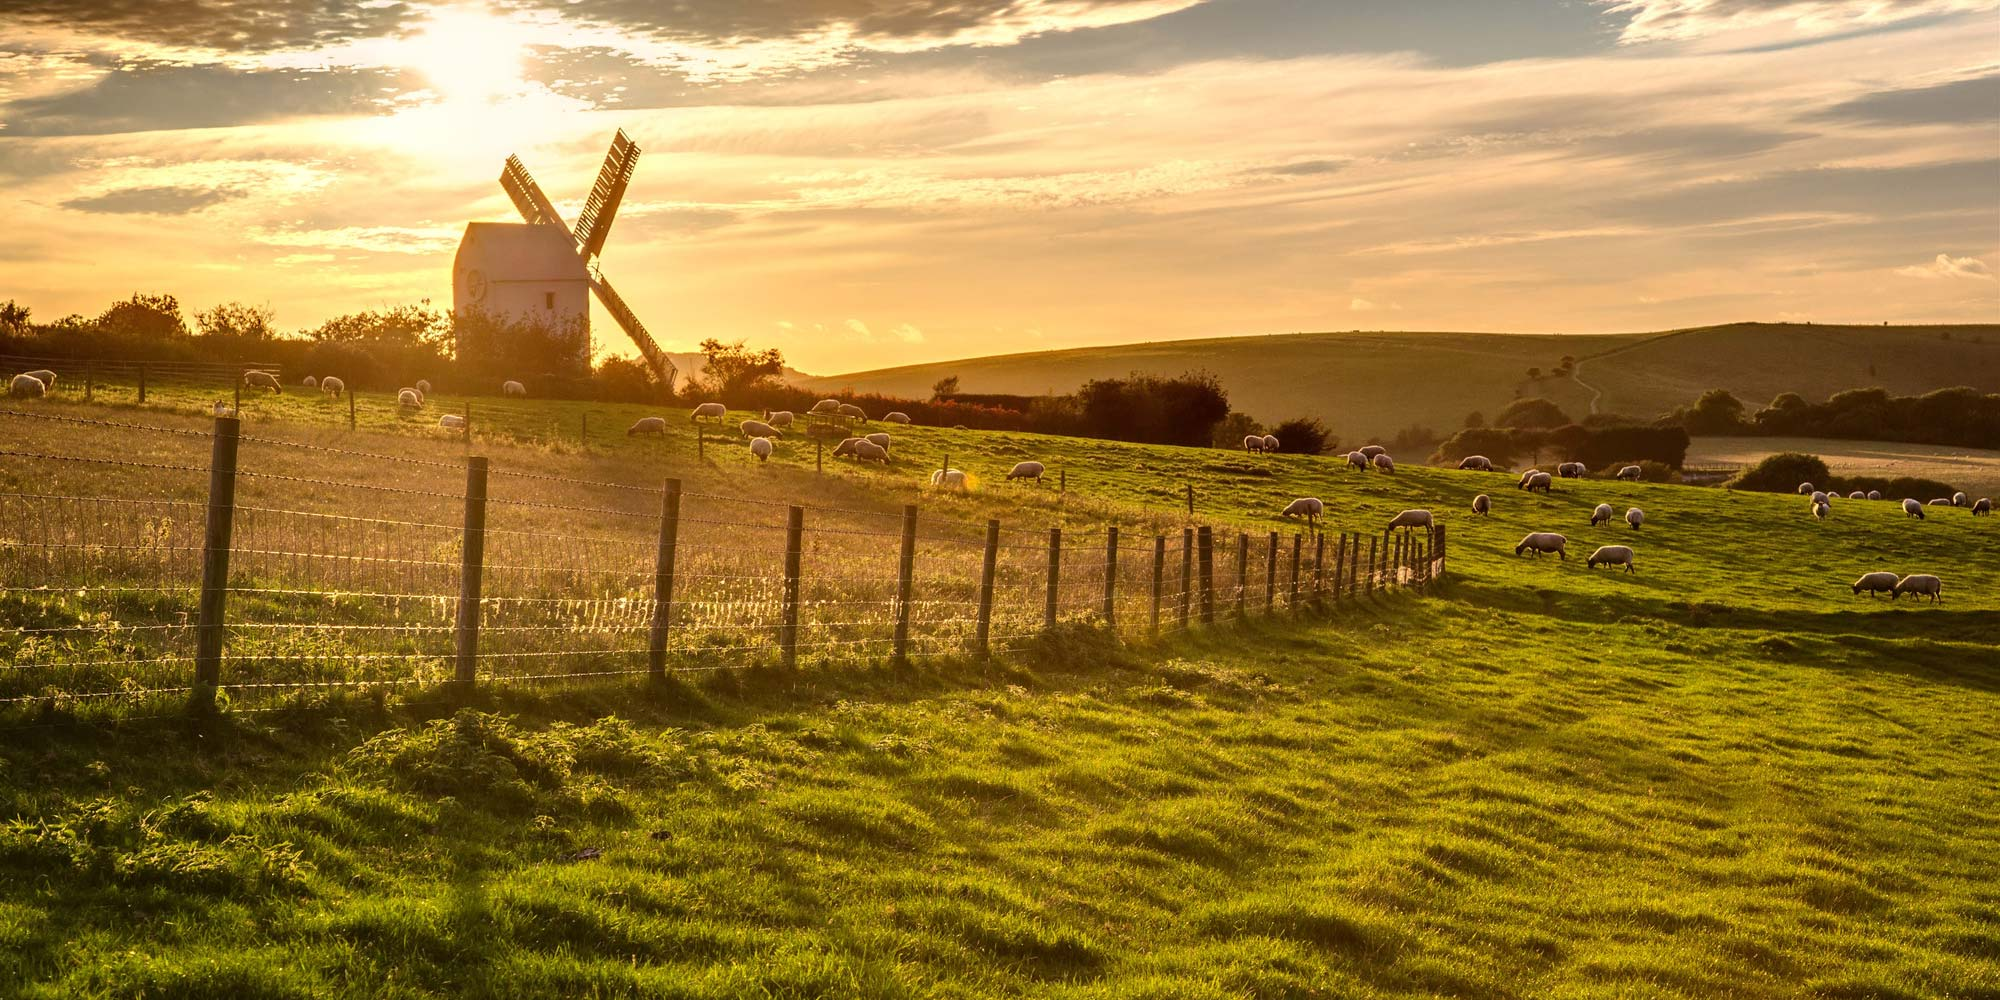 New Plan Gives Every Schoolchild A Chance To Visit Rural